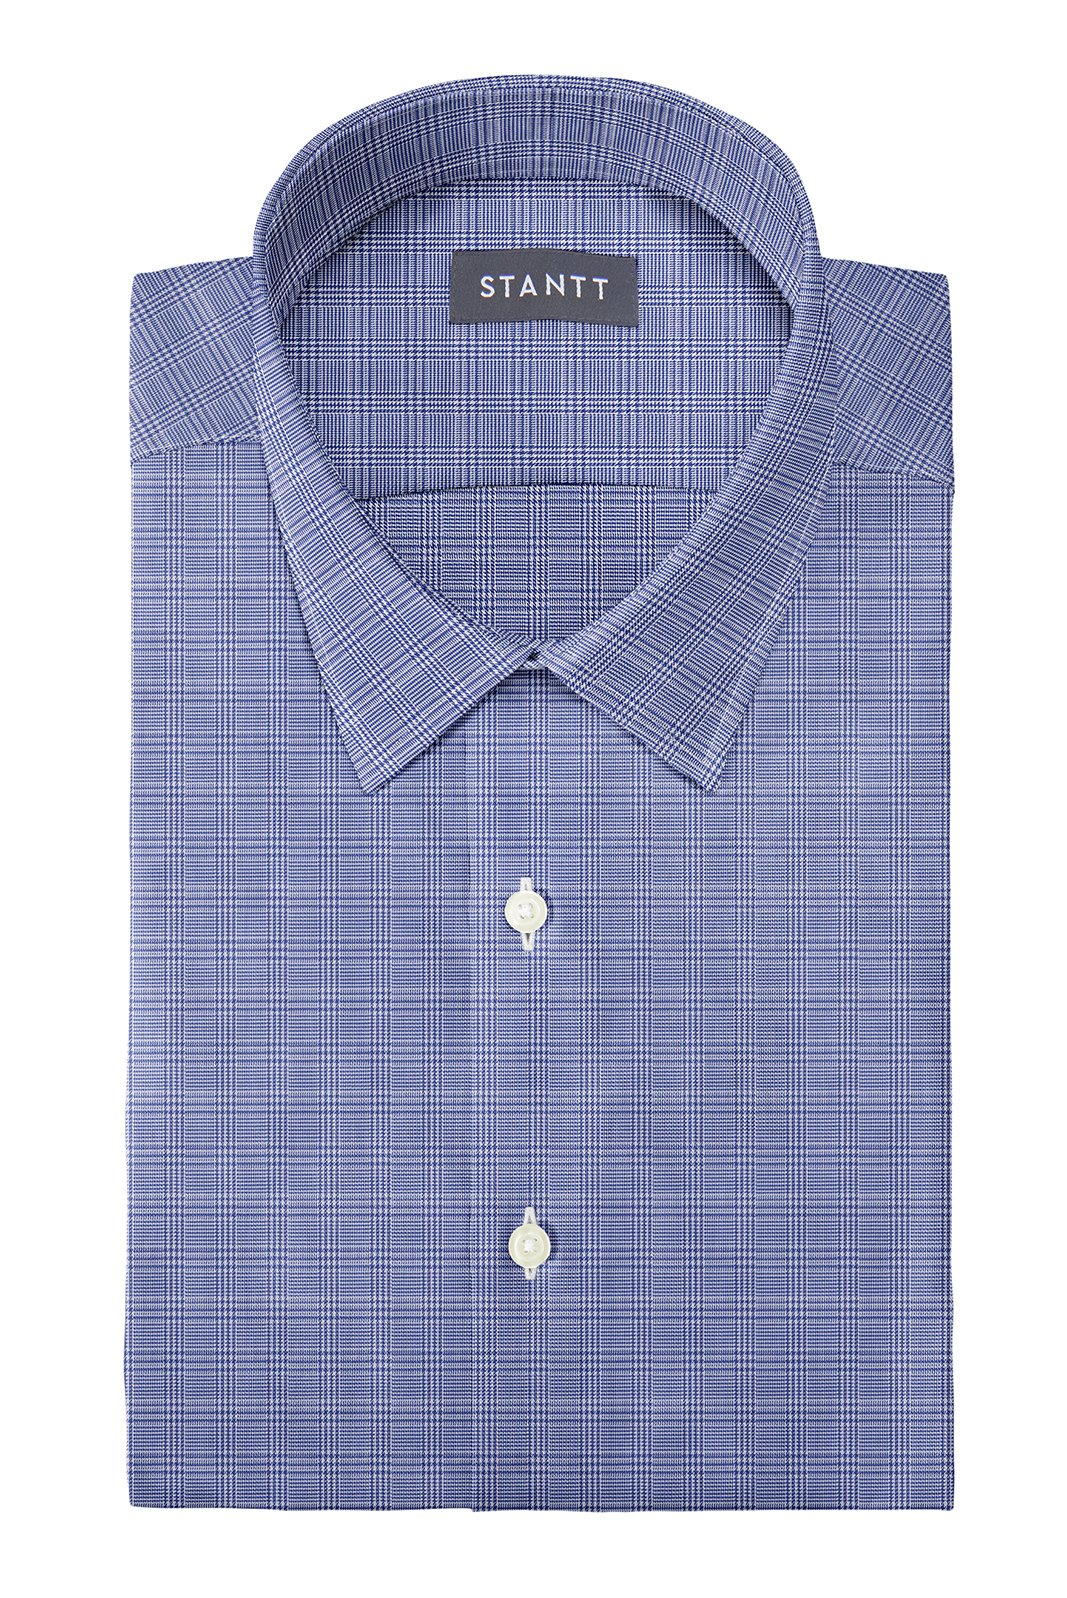 Wrinkle-Resistant Navy Prince of Wales Check: Semi-Spread Collar, Barrel Cuff